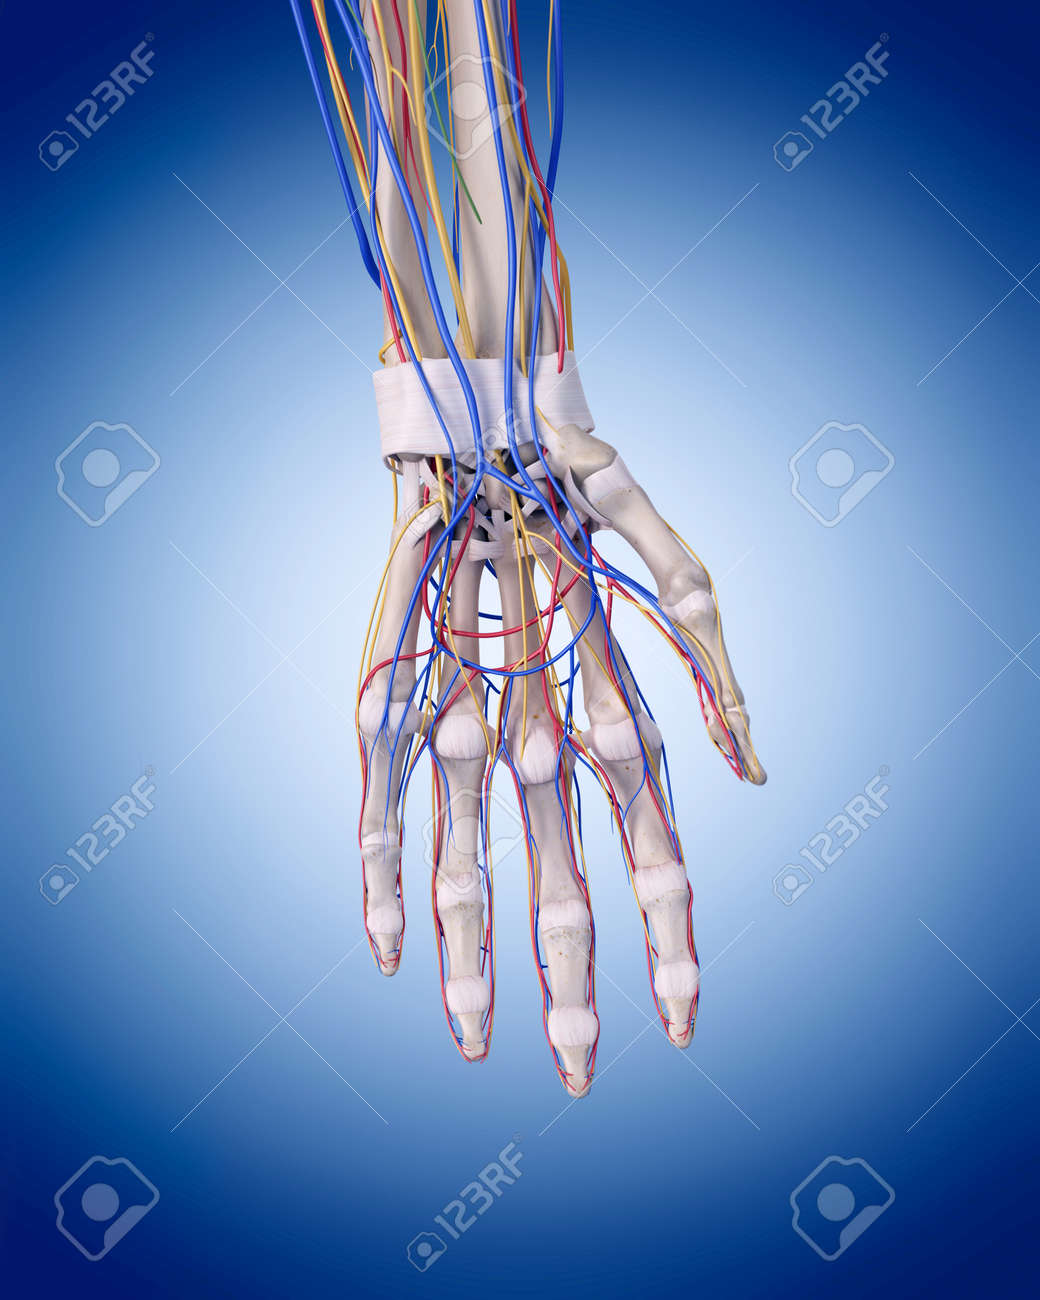 Medically Accurate Illustration Of The Hand Anatomy Stock Photo ...